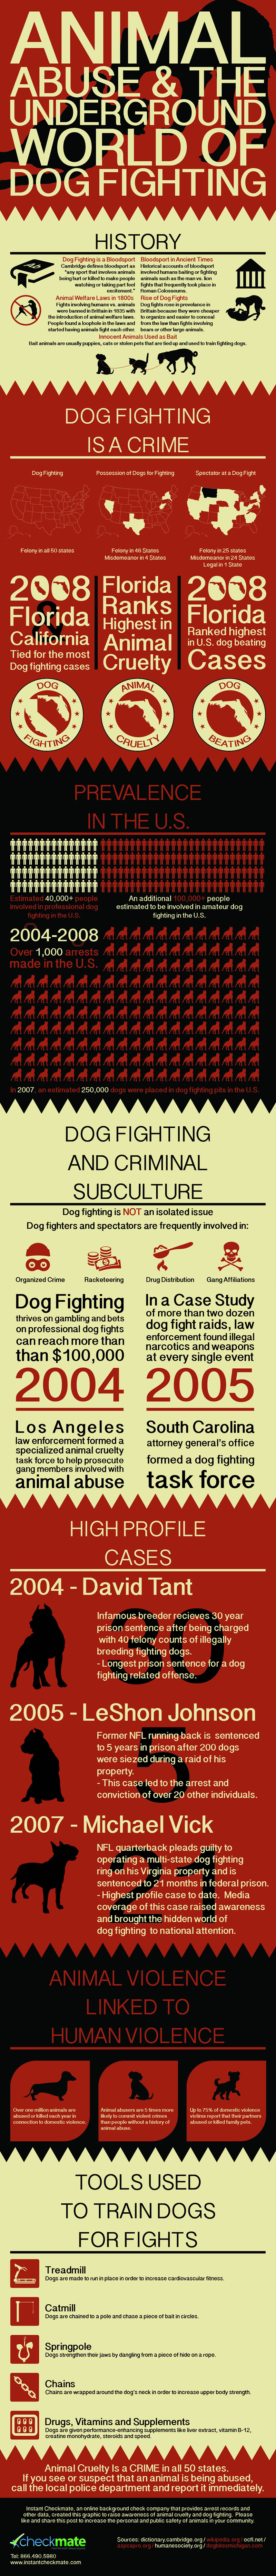 25 Fascinating Dog Abuse Facts and Statistics